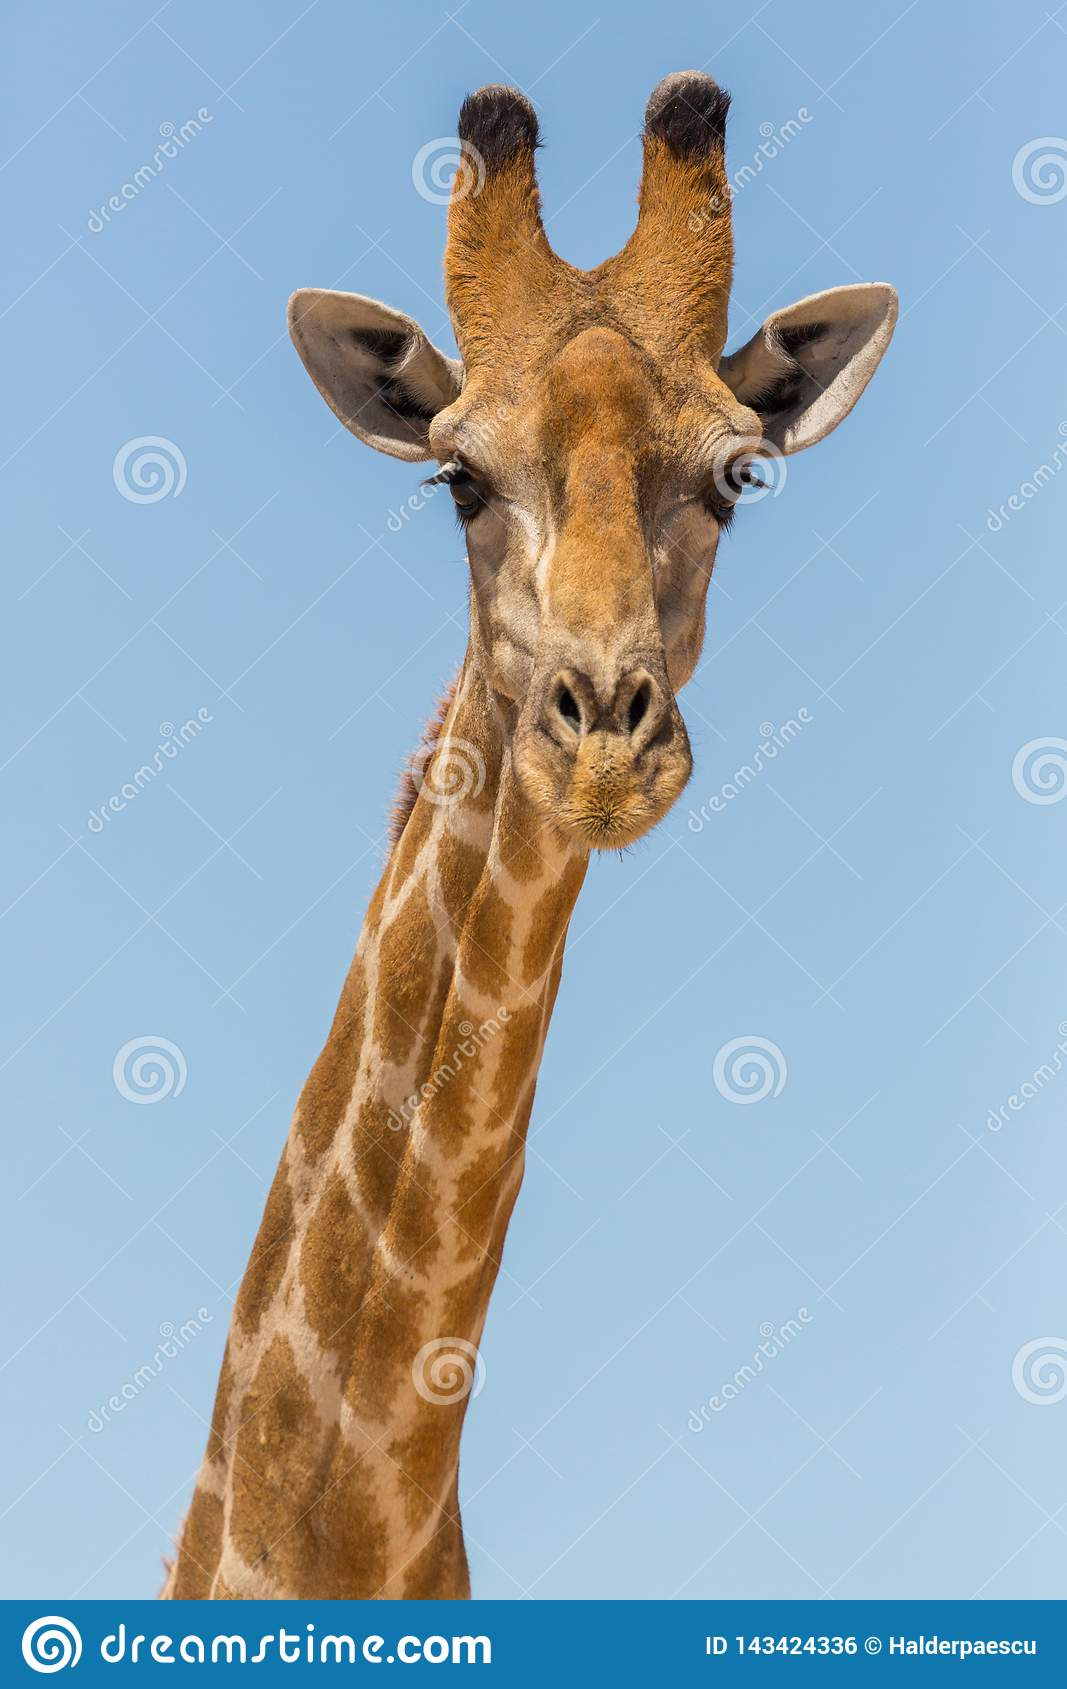 Detailed front view portrait of male giraffe head and neck, blue sky